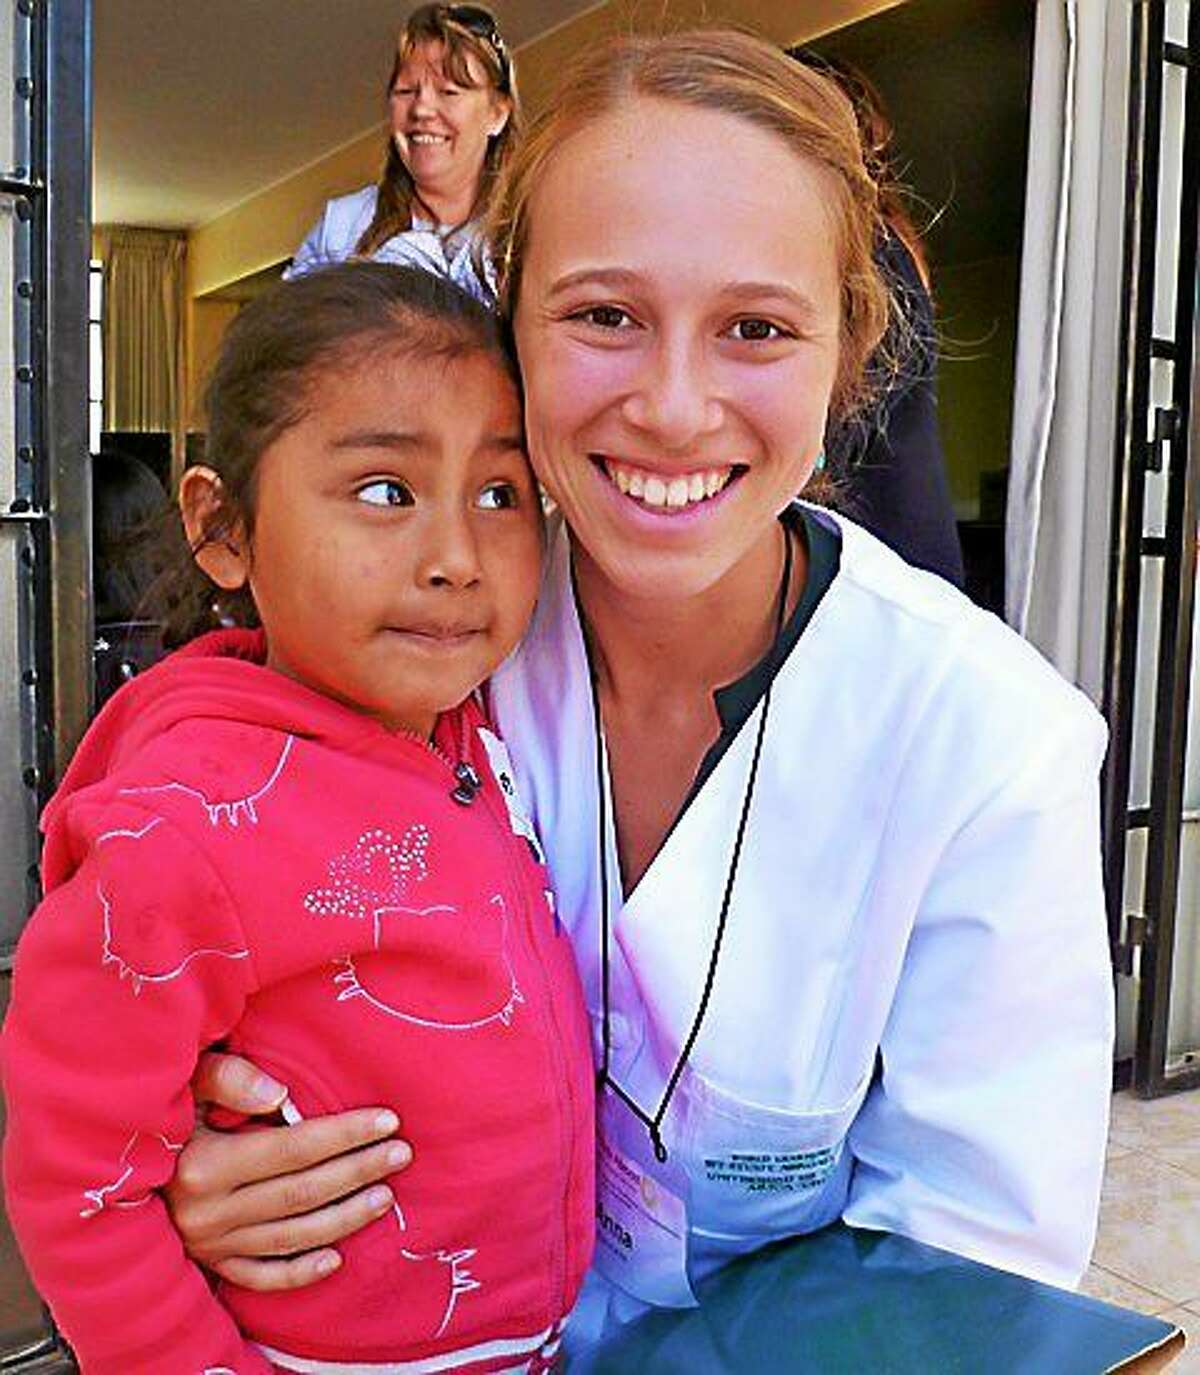 CONTRIBUTED PHOTO Anna Gunod, a graduate of Litchfield High School, is raising funds to pay for an internship that will take her to a rural village in Uganda, and allow her to share her knowledge of health care practices with the residents.